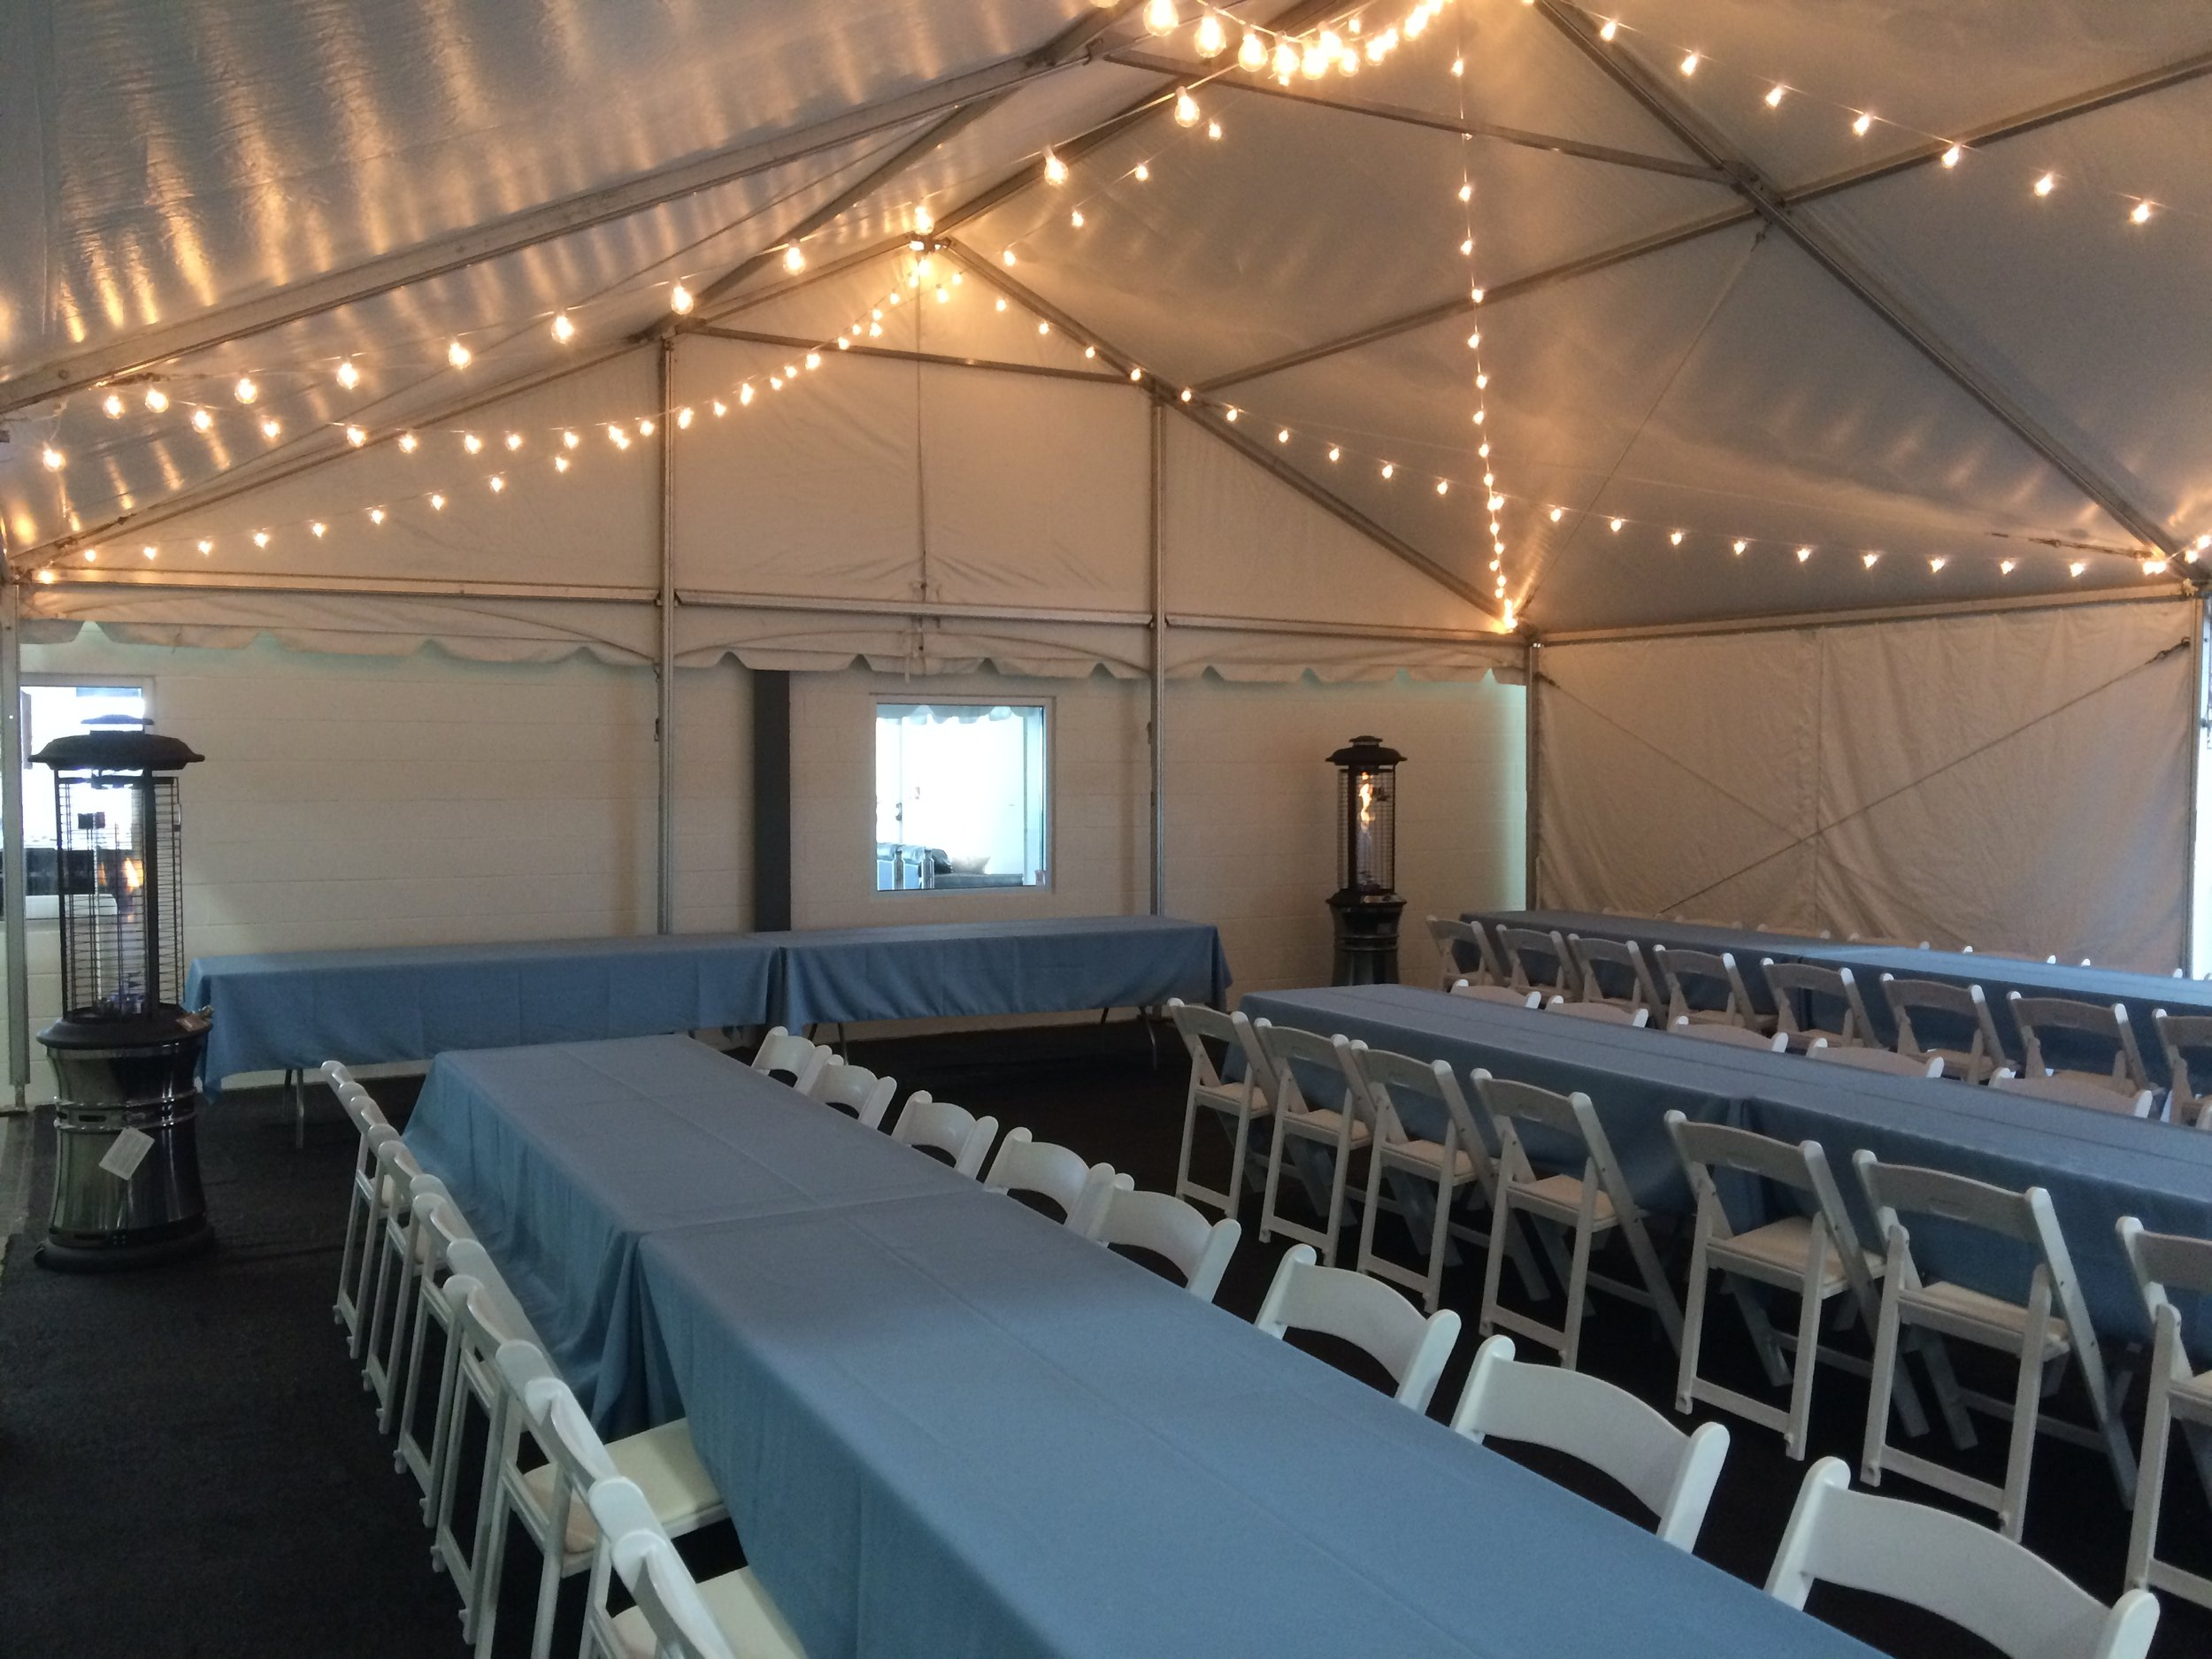 Frame tents, cafe lighting, heaters, tables and chairs to rent for your tent wedding